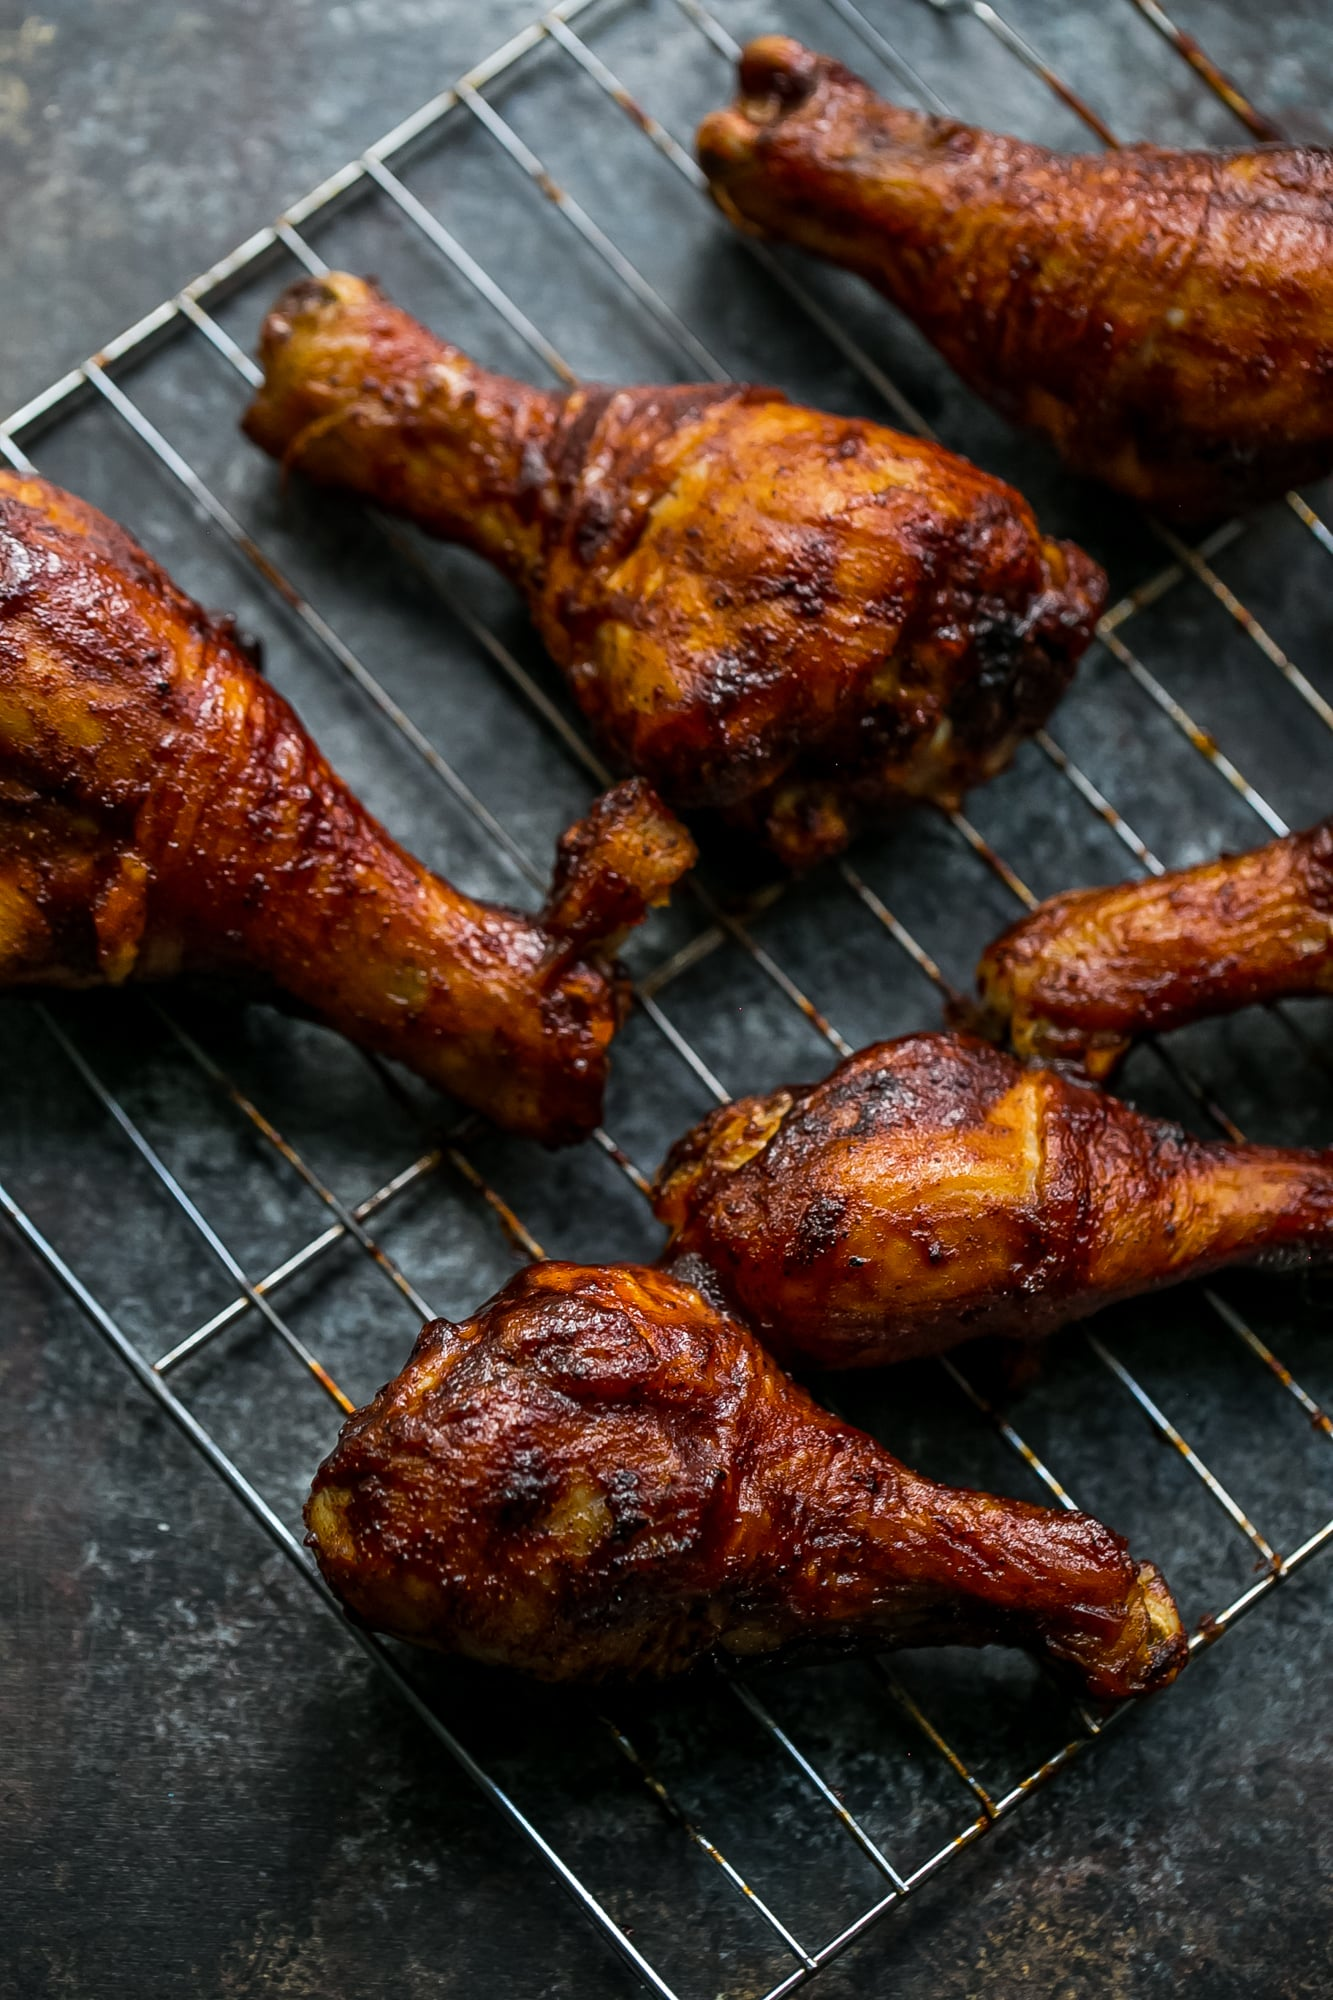 chicken drumsticks, easy baked chicken drumsticks, bbq baked chicken, baked chicken legs recipe, bbq chicken, chicken legs, how to cook chicken drumsticks in the oven, easy chicken drumsticks, keto bbq chicken recipe